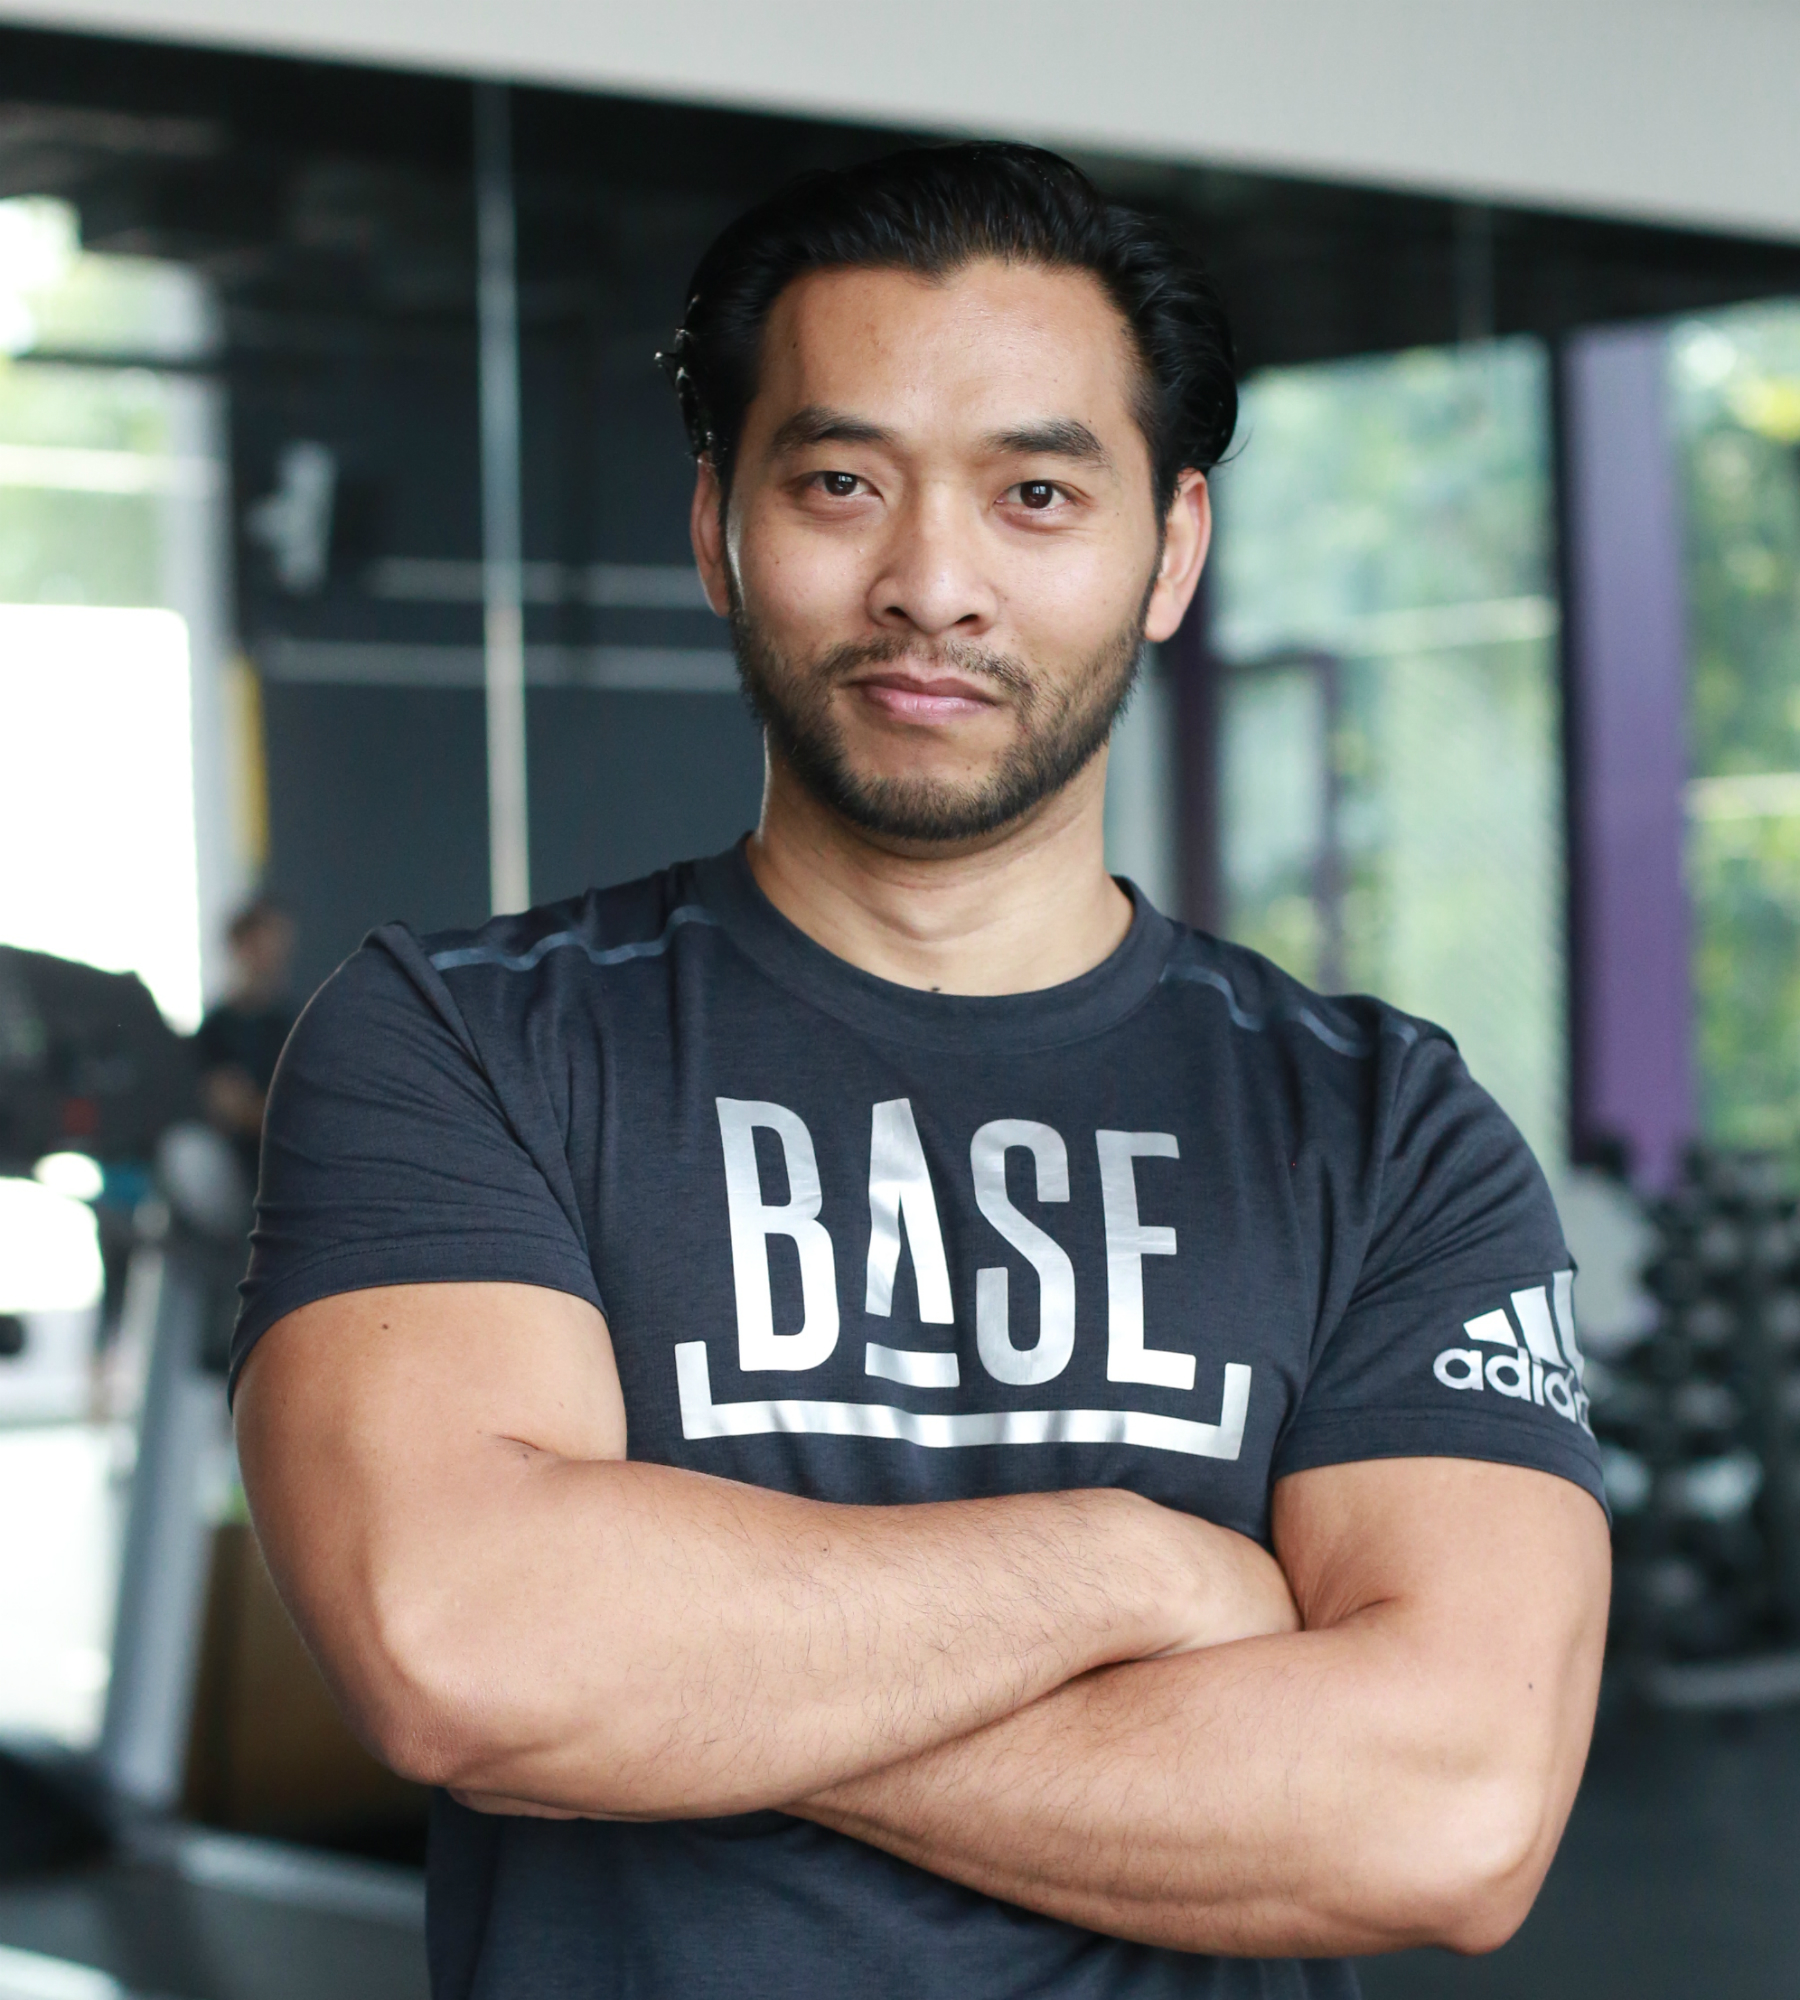 BASE Lowdown: Personal Training Coach Tak